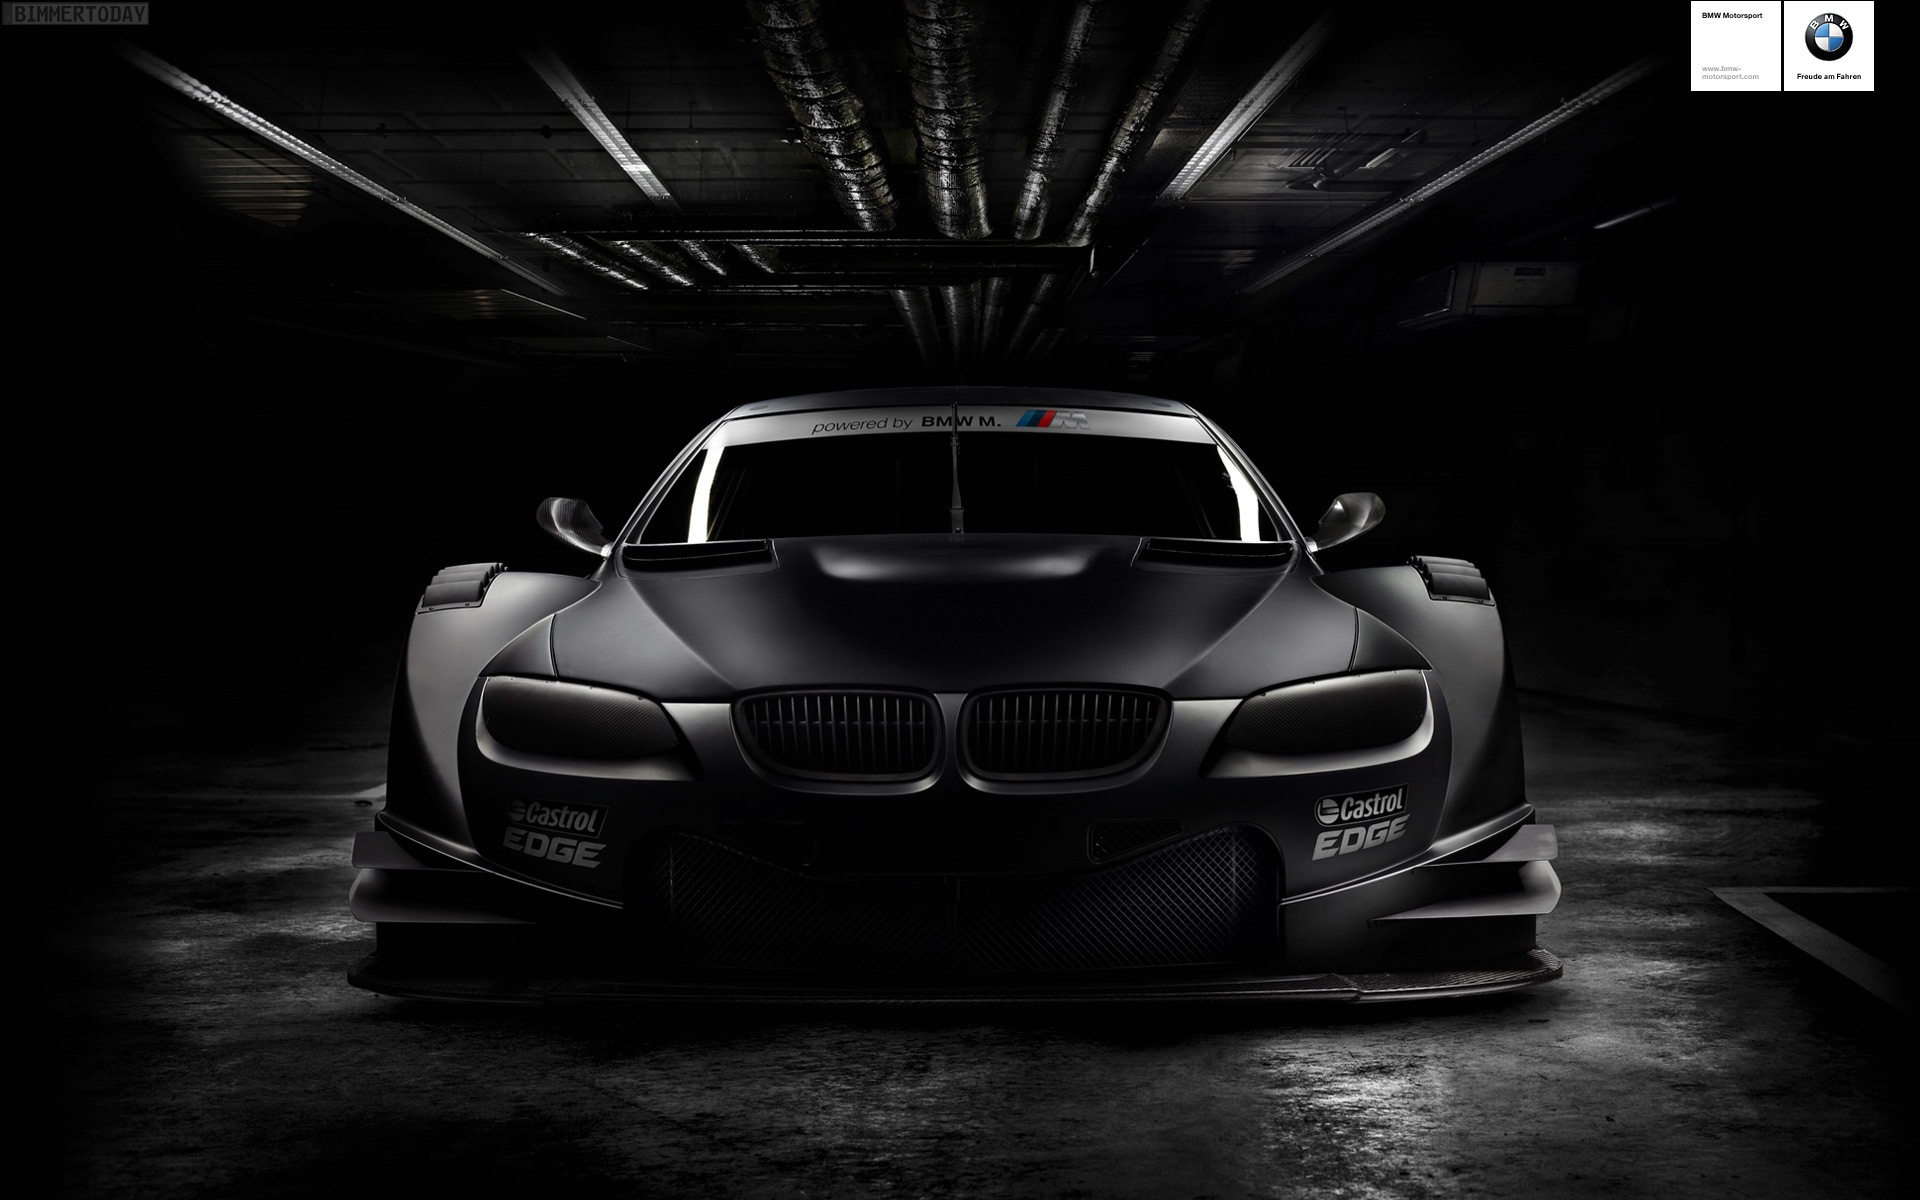 Bmw Wallpaper Android Phone Download 228 Wallpaper Walldiskpaper